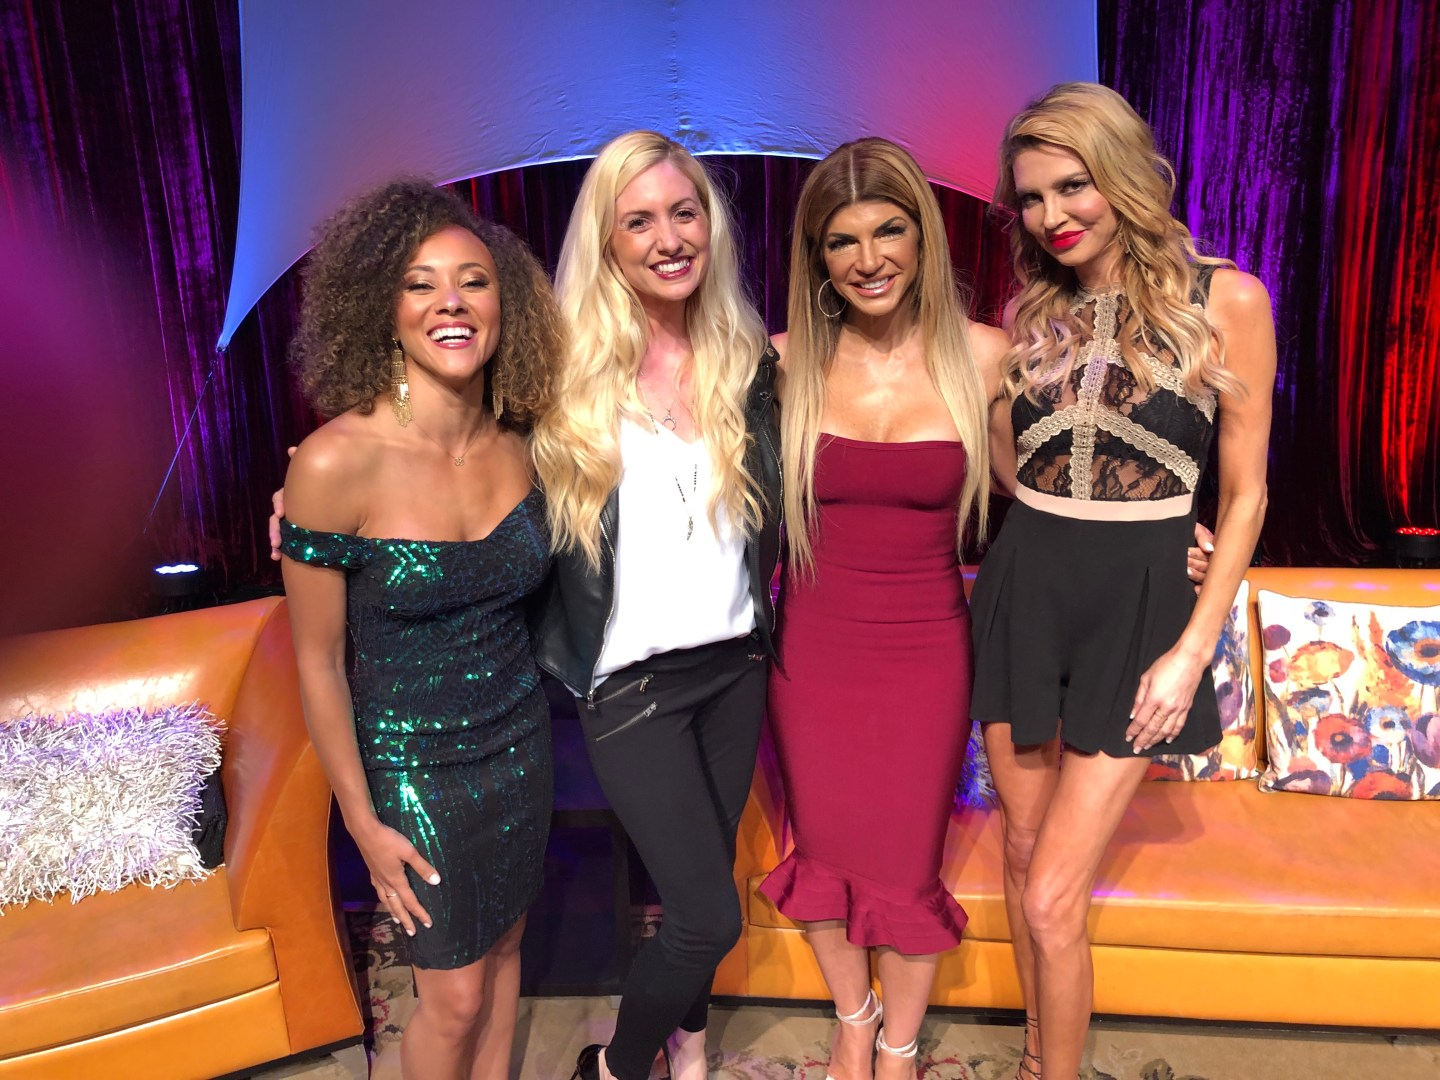 Meeting The Real Housewives